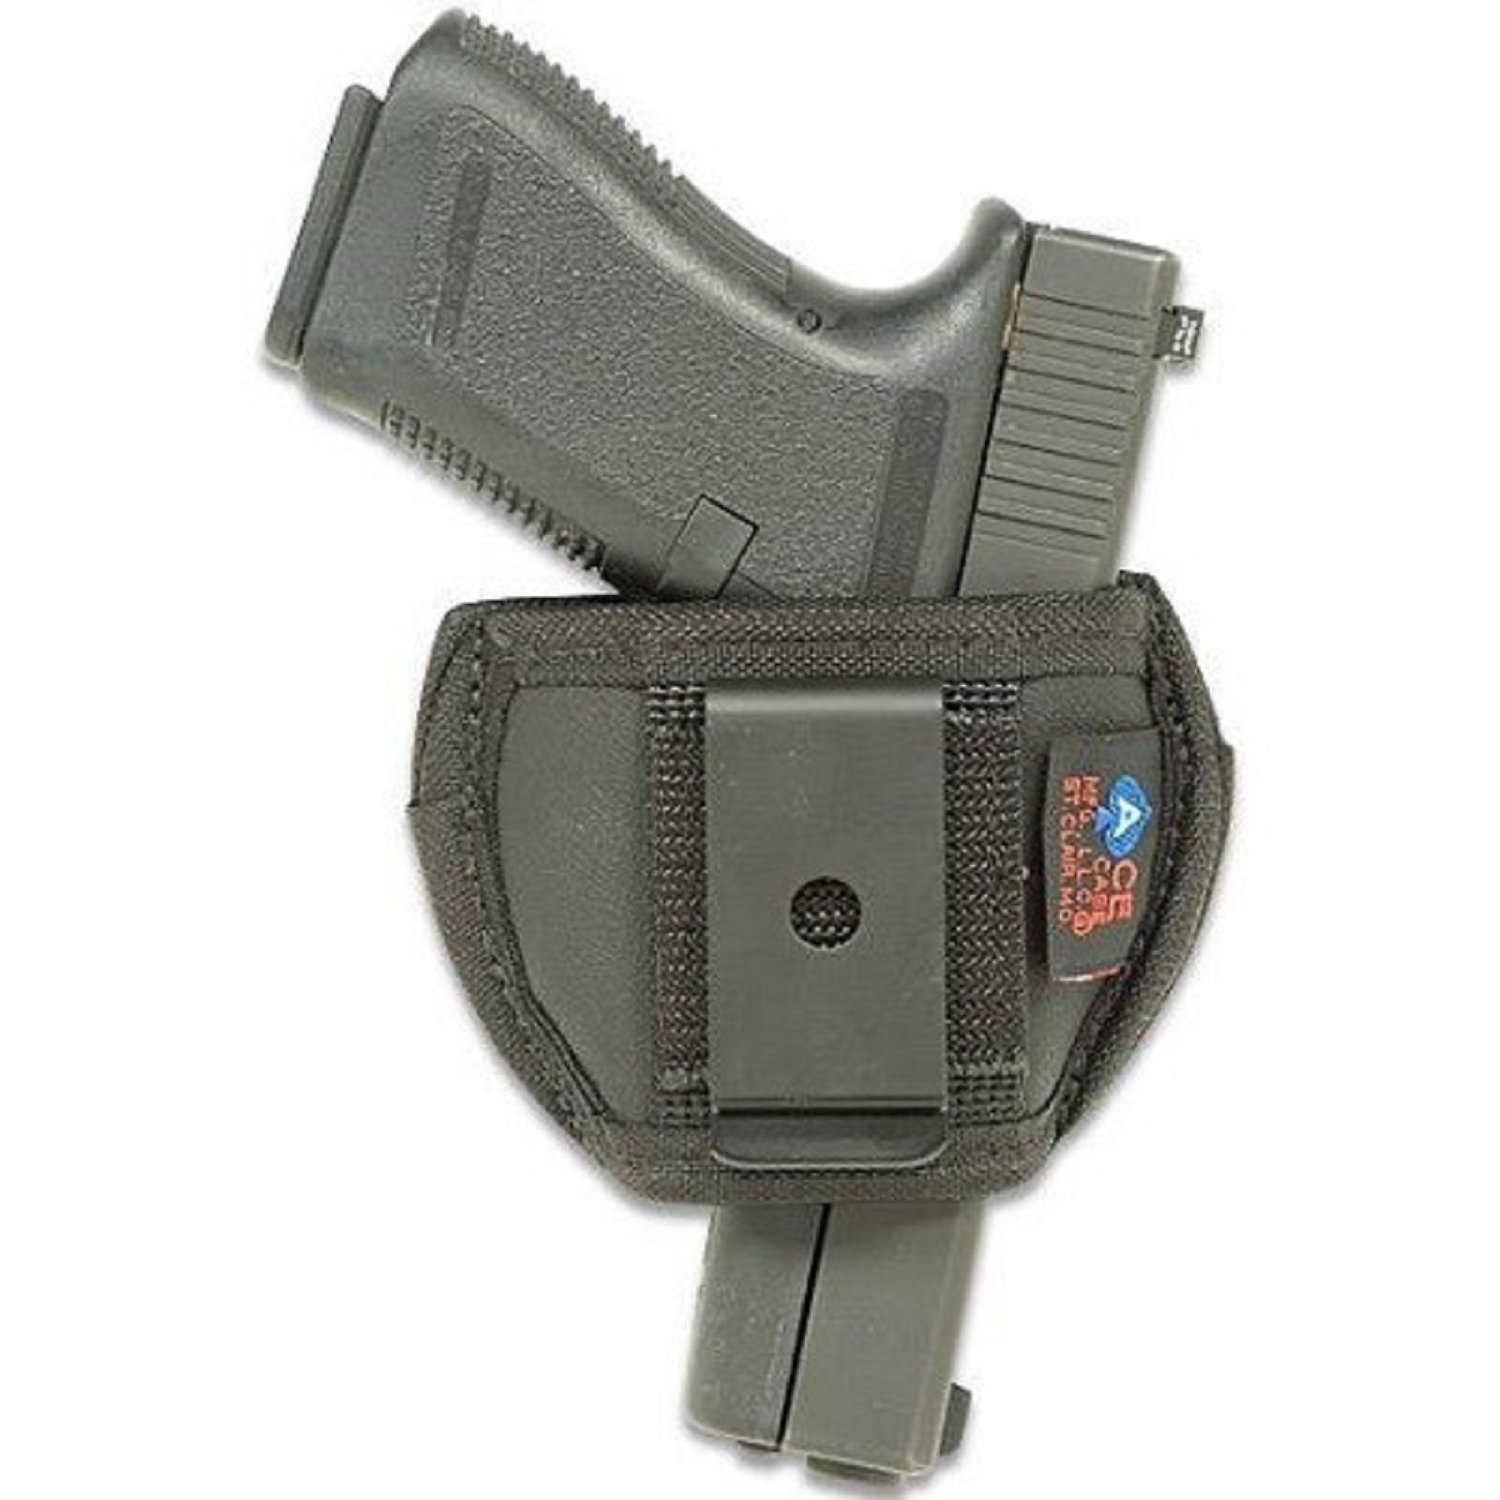 Ace Case Concealed In-the-Pants/Waistband Holster Fits Glock 17,19,20,21,22,23,25,26,27,28,29,30,31,32,33,36,38,39